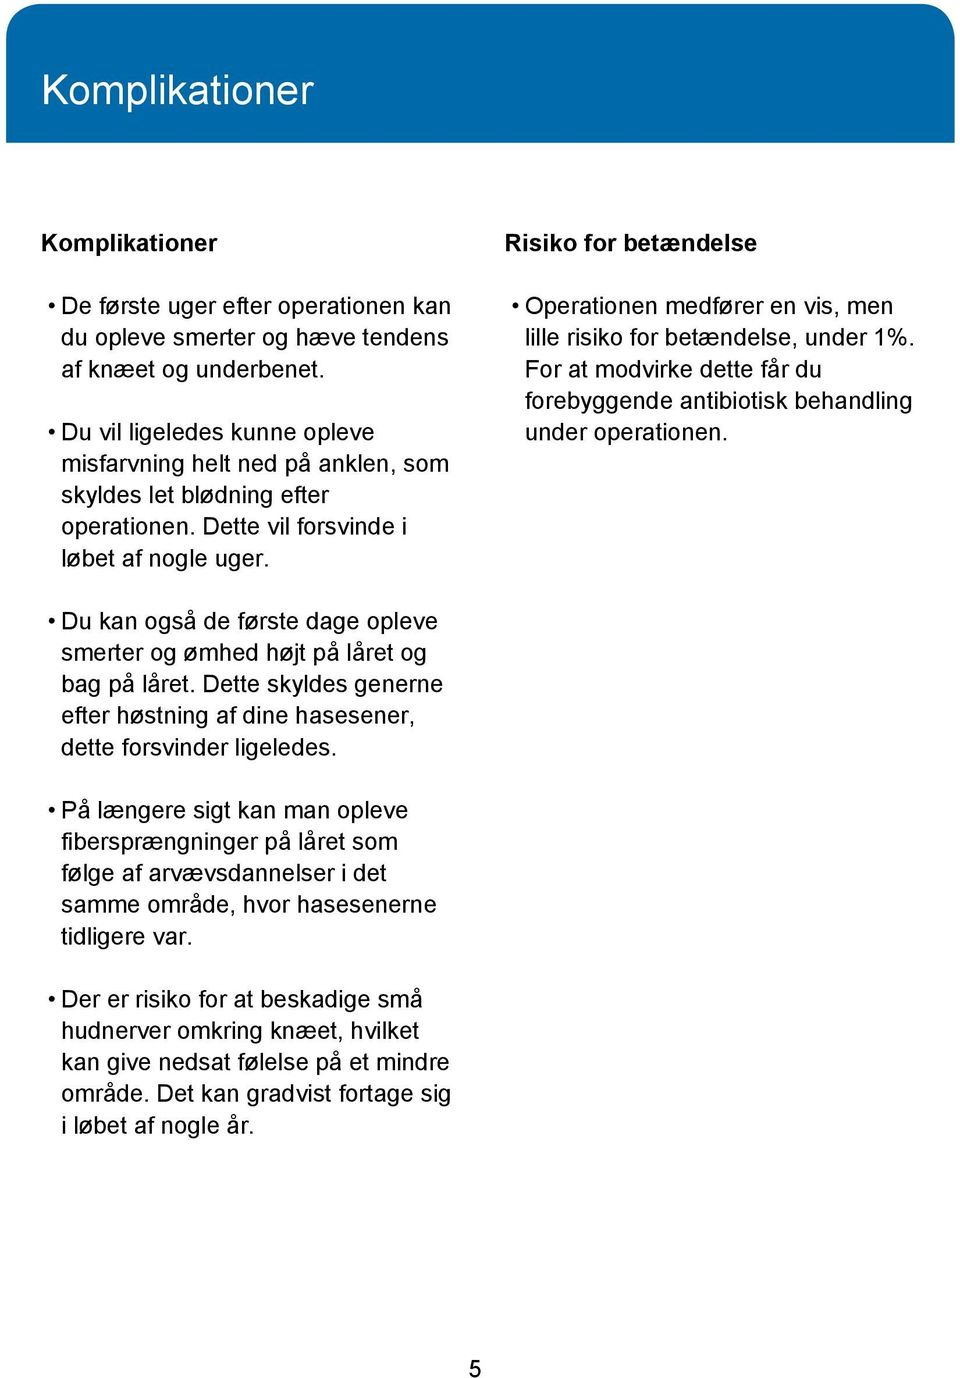 Risiko for betændelse Operationen medfører en vis, men lille risiko for betændelse, under 1%. For at modvirke dette får du forebyggende antibiotisk behandling under operationen.